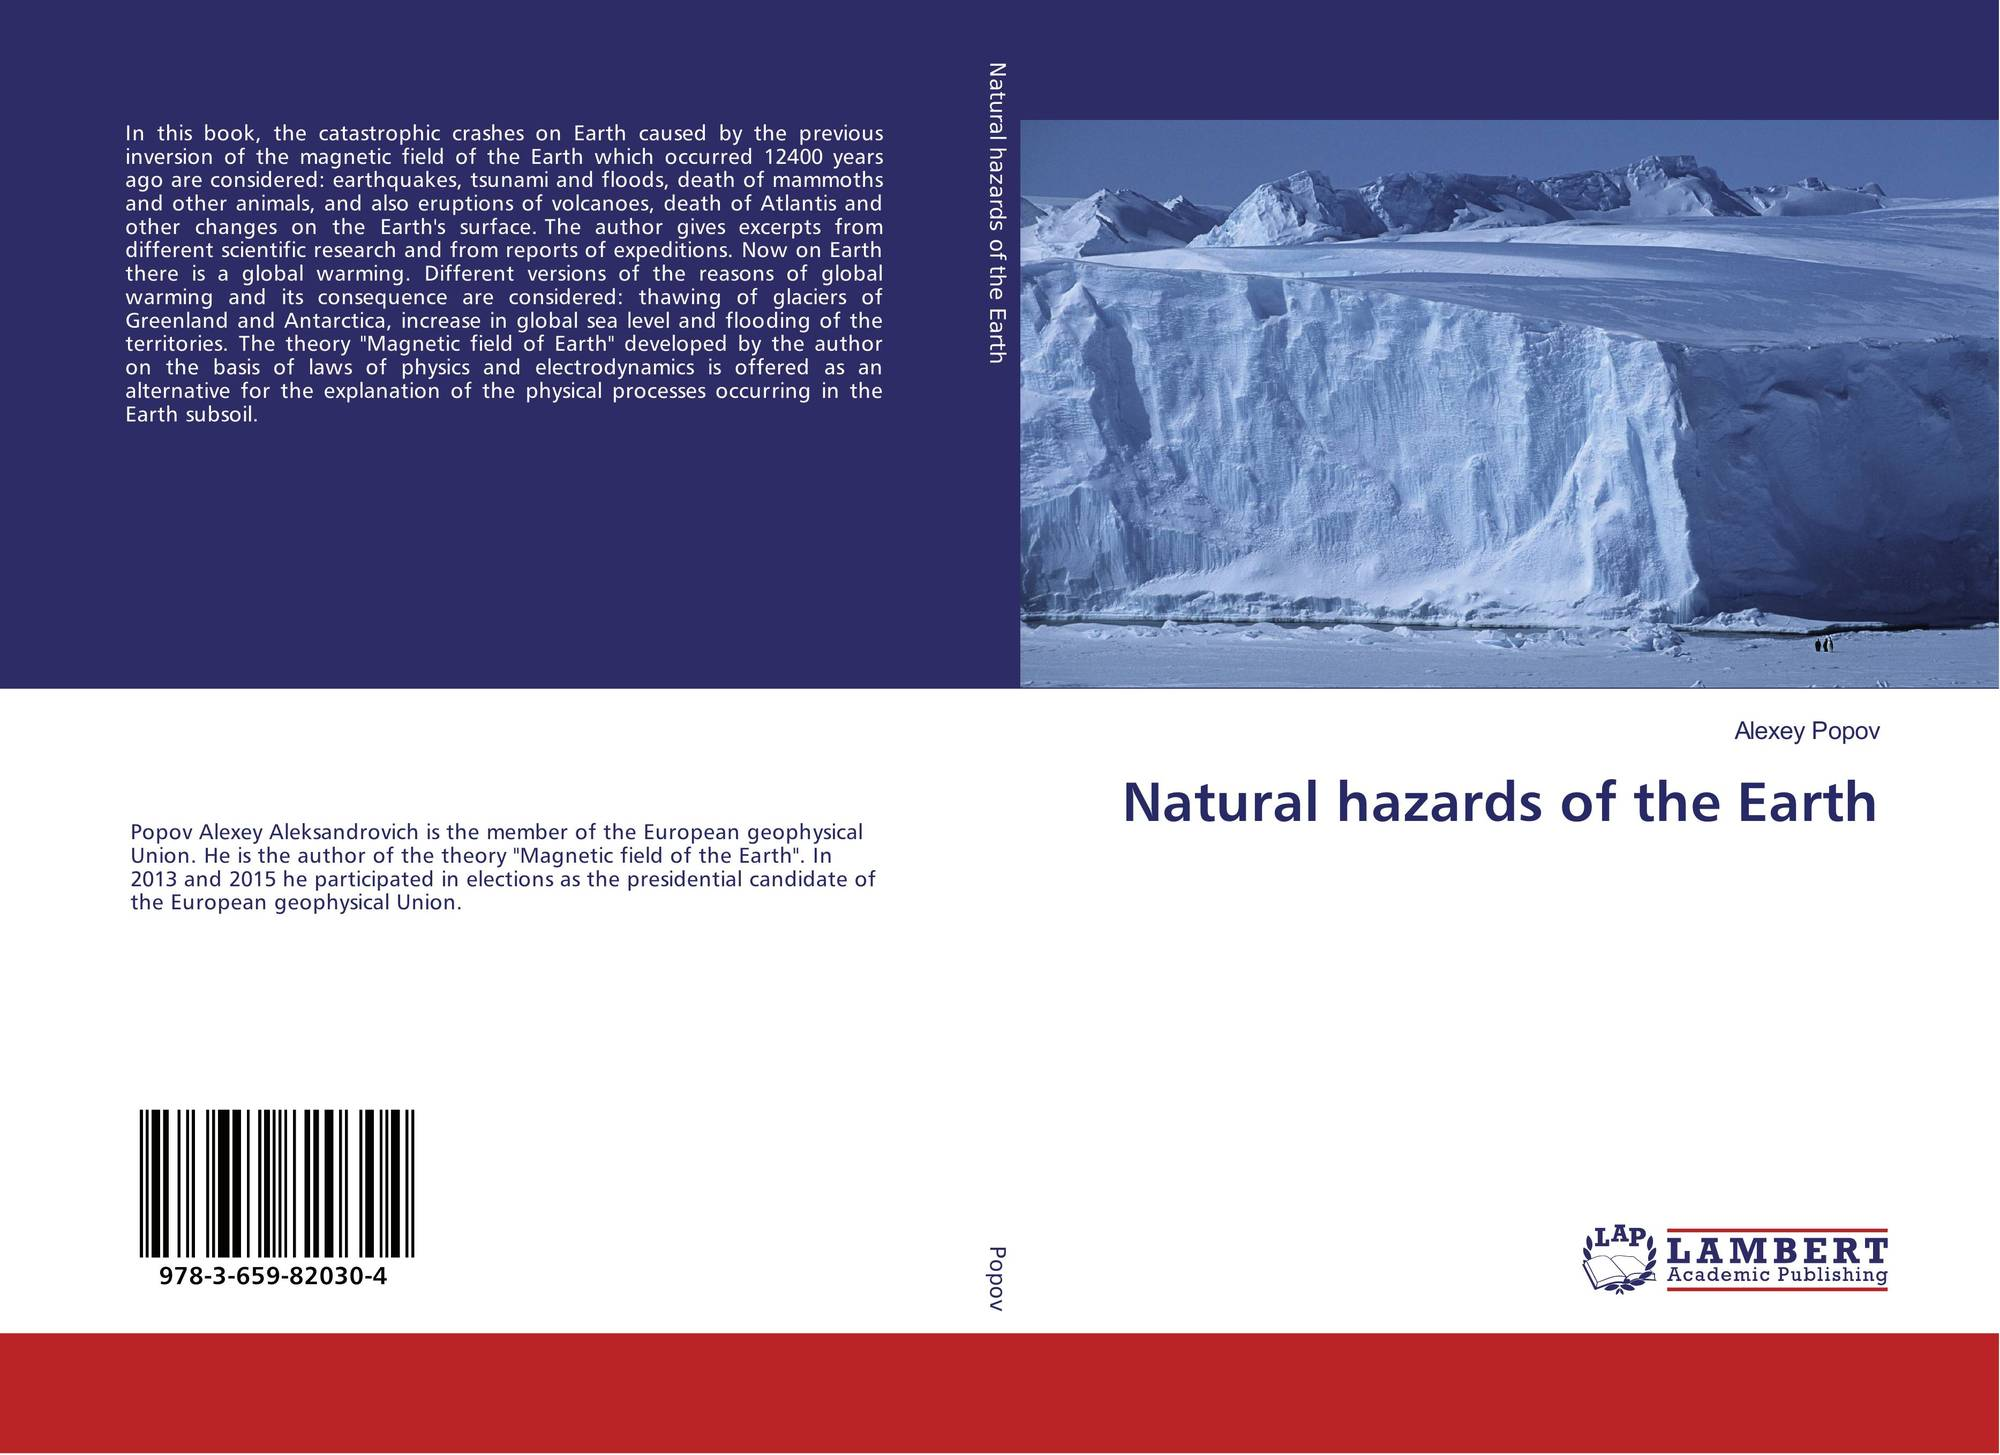 earth hazards Problems and risks in the domain of earth system governance include global warming it is hard to estimate the magnitude of the risk from this or other dangers.